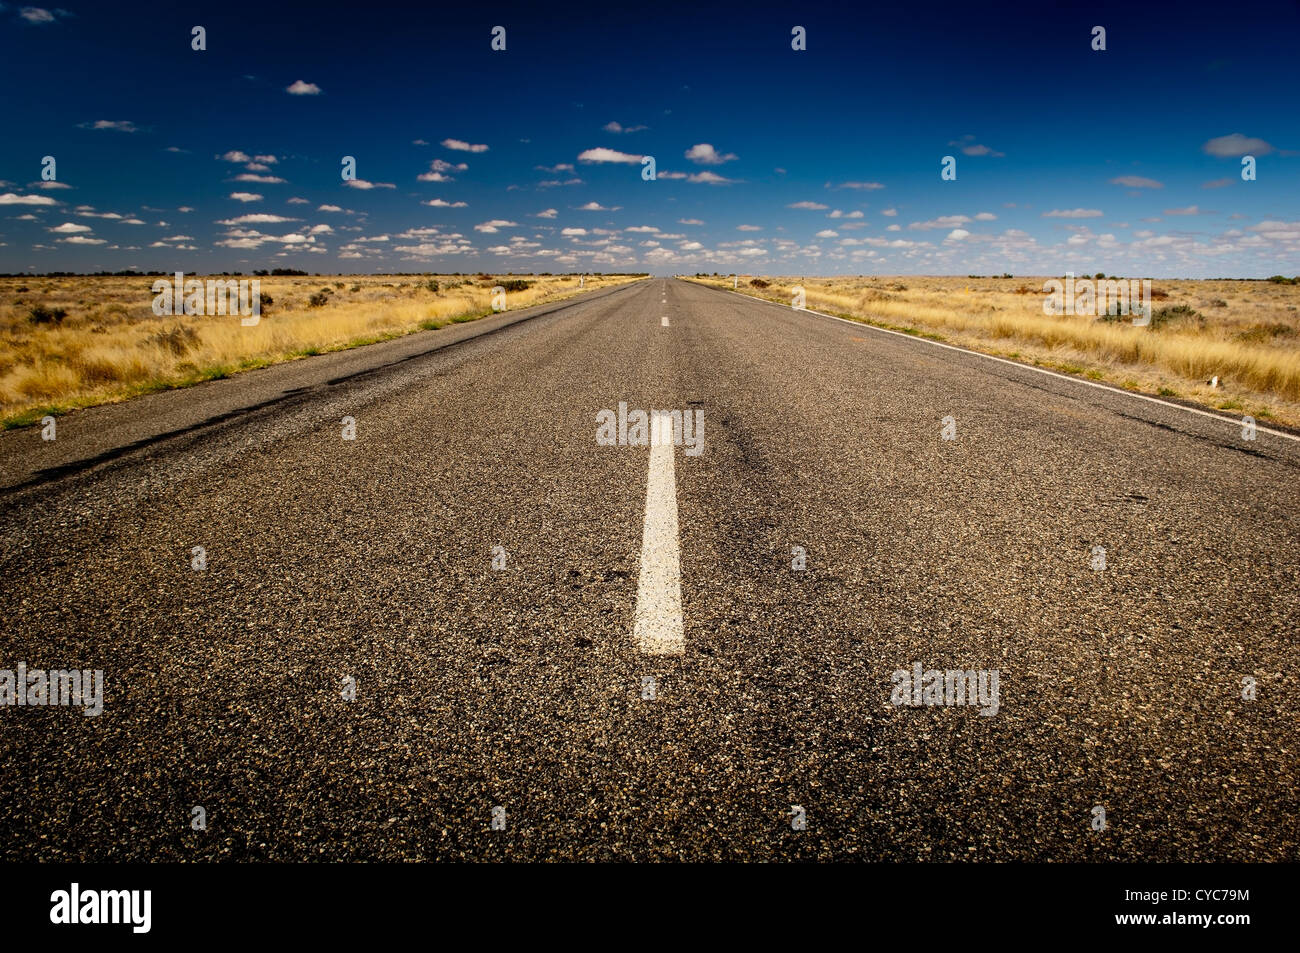 Open road ahead, endless road for concept - Stock Image